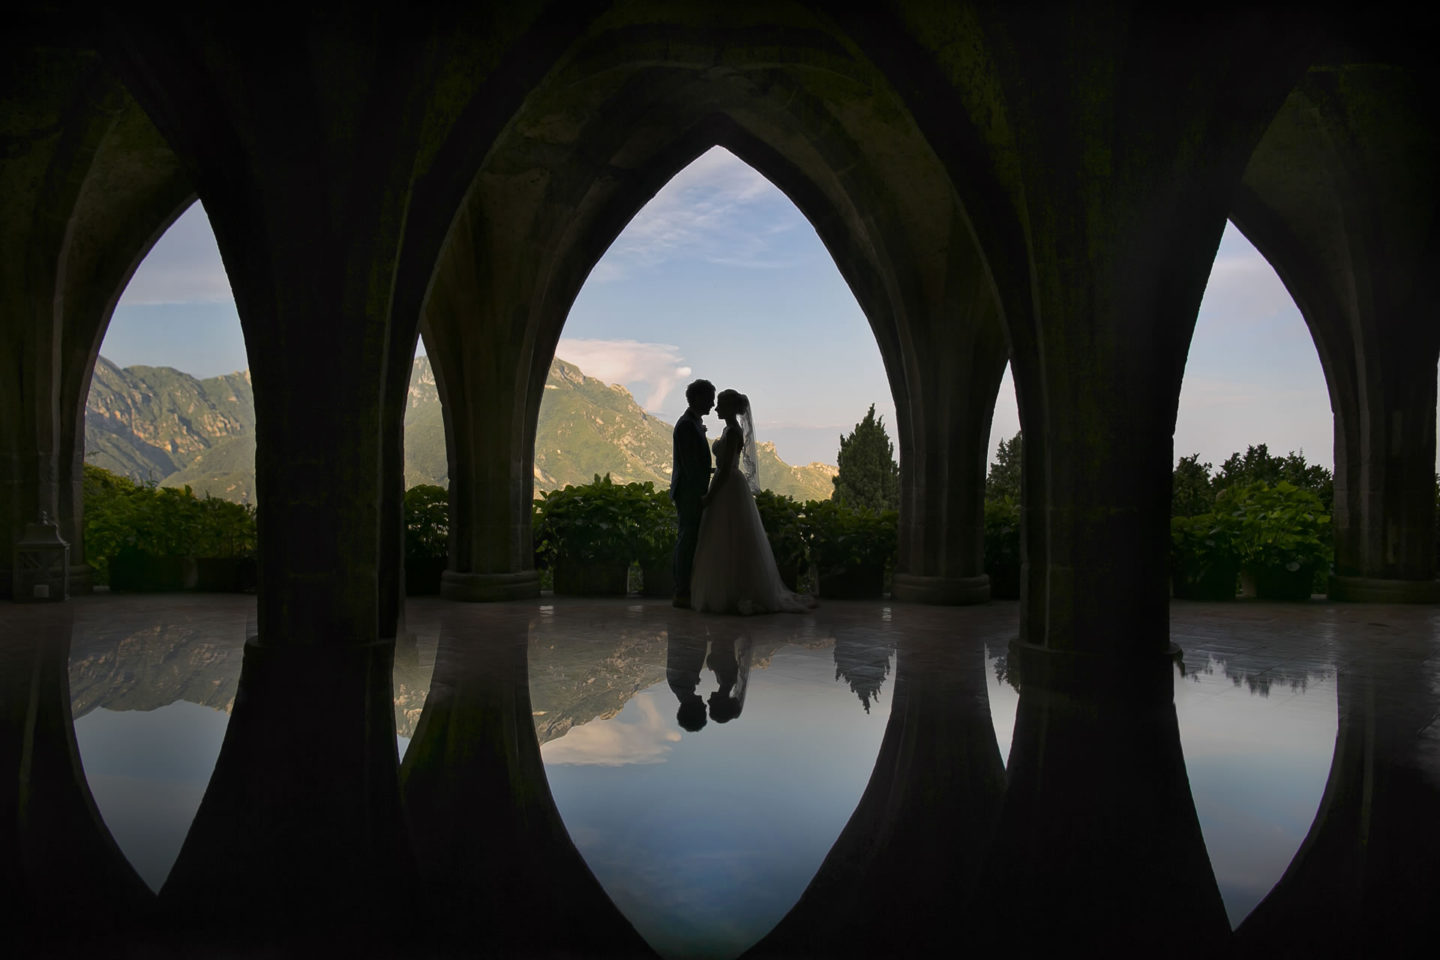 Upside Down :: Bride and groom. Couple :: David Bastianoni wedding photographer